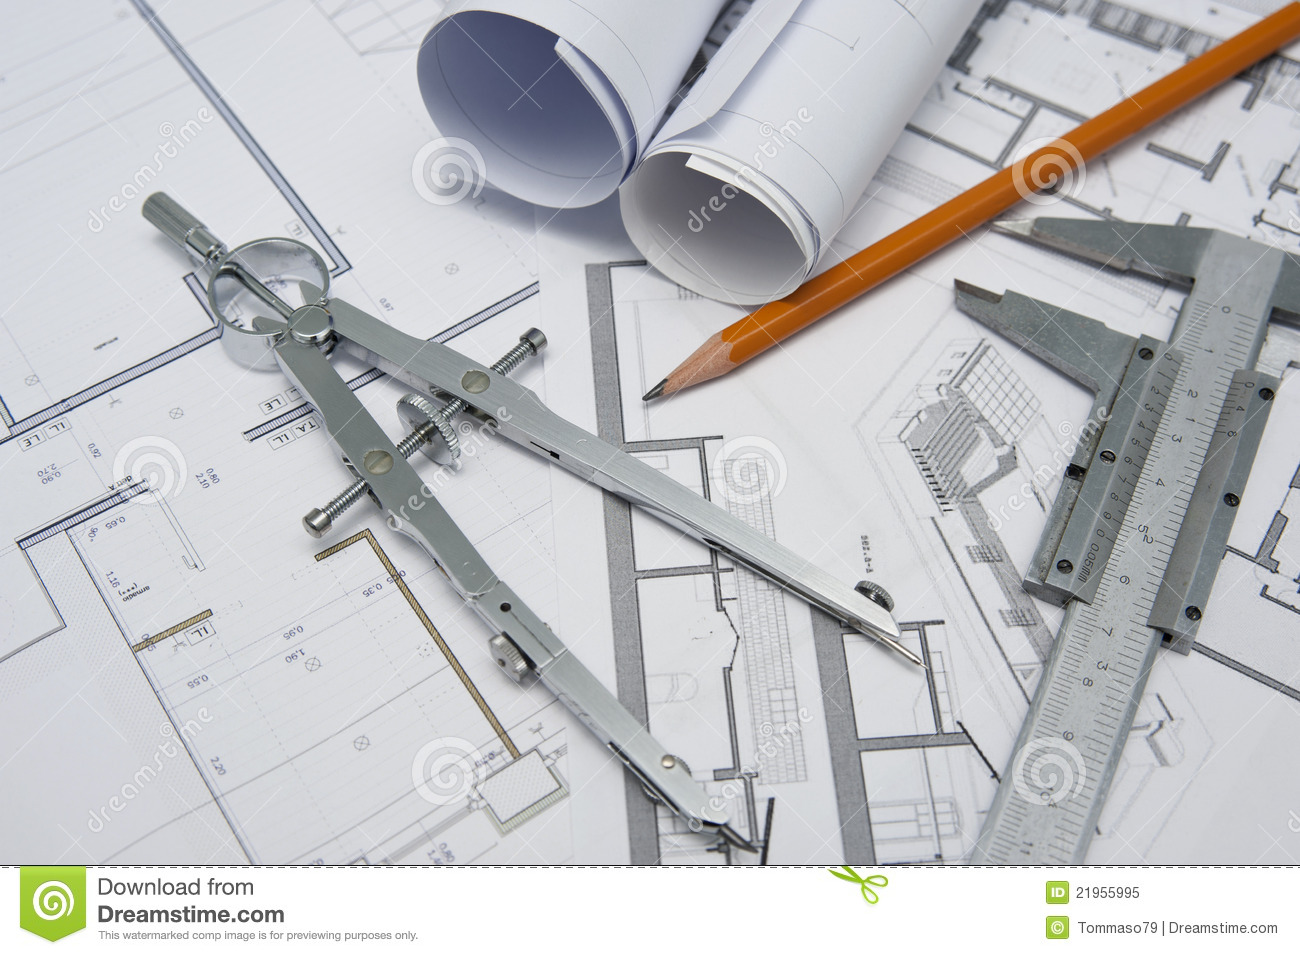 Outils d 39 architecte image stock image du tage plan for Architecture de plan libre